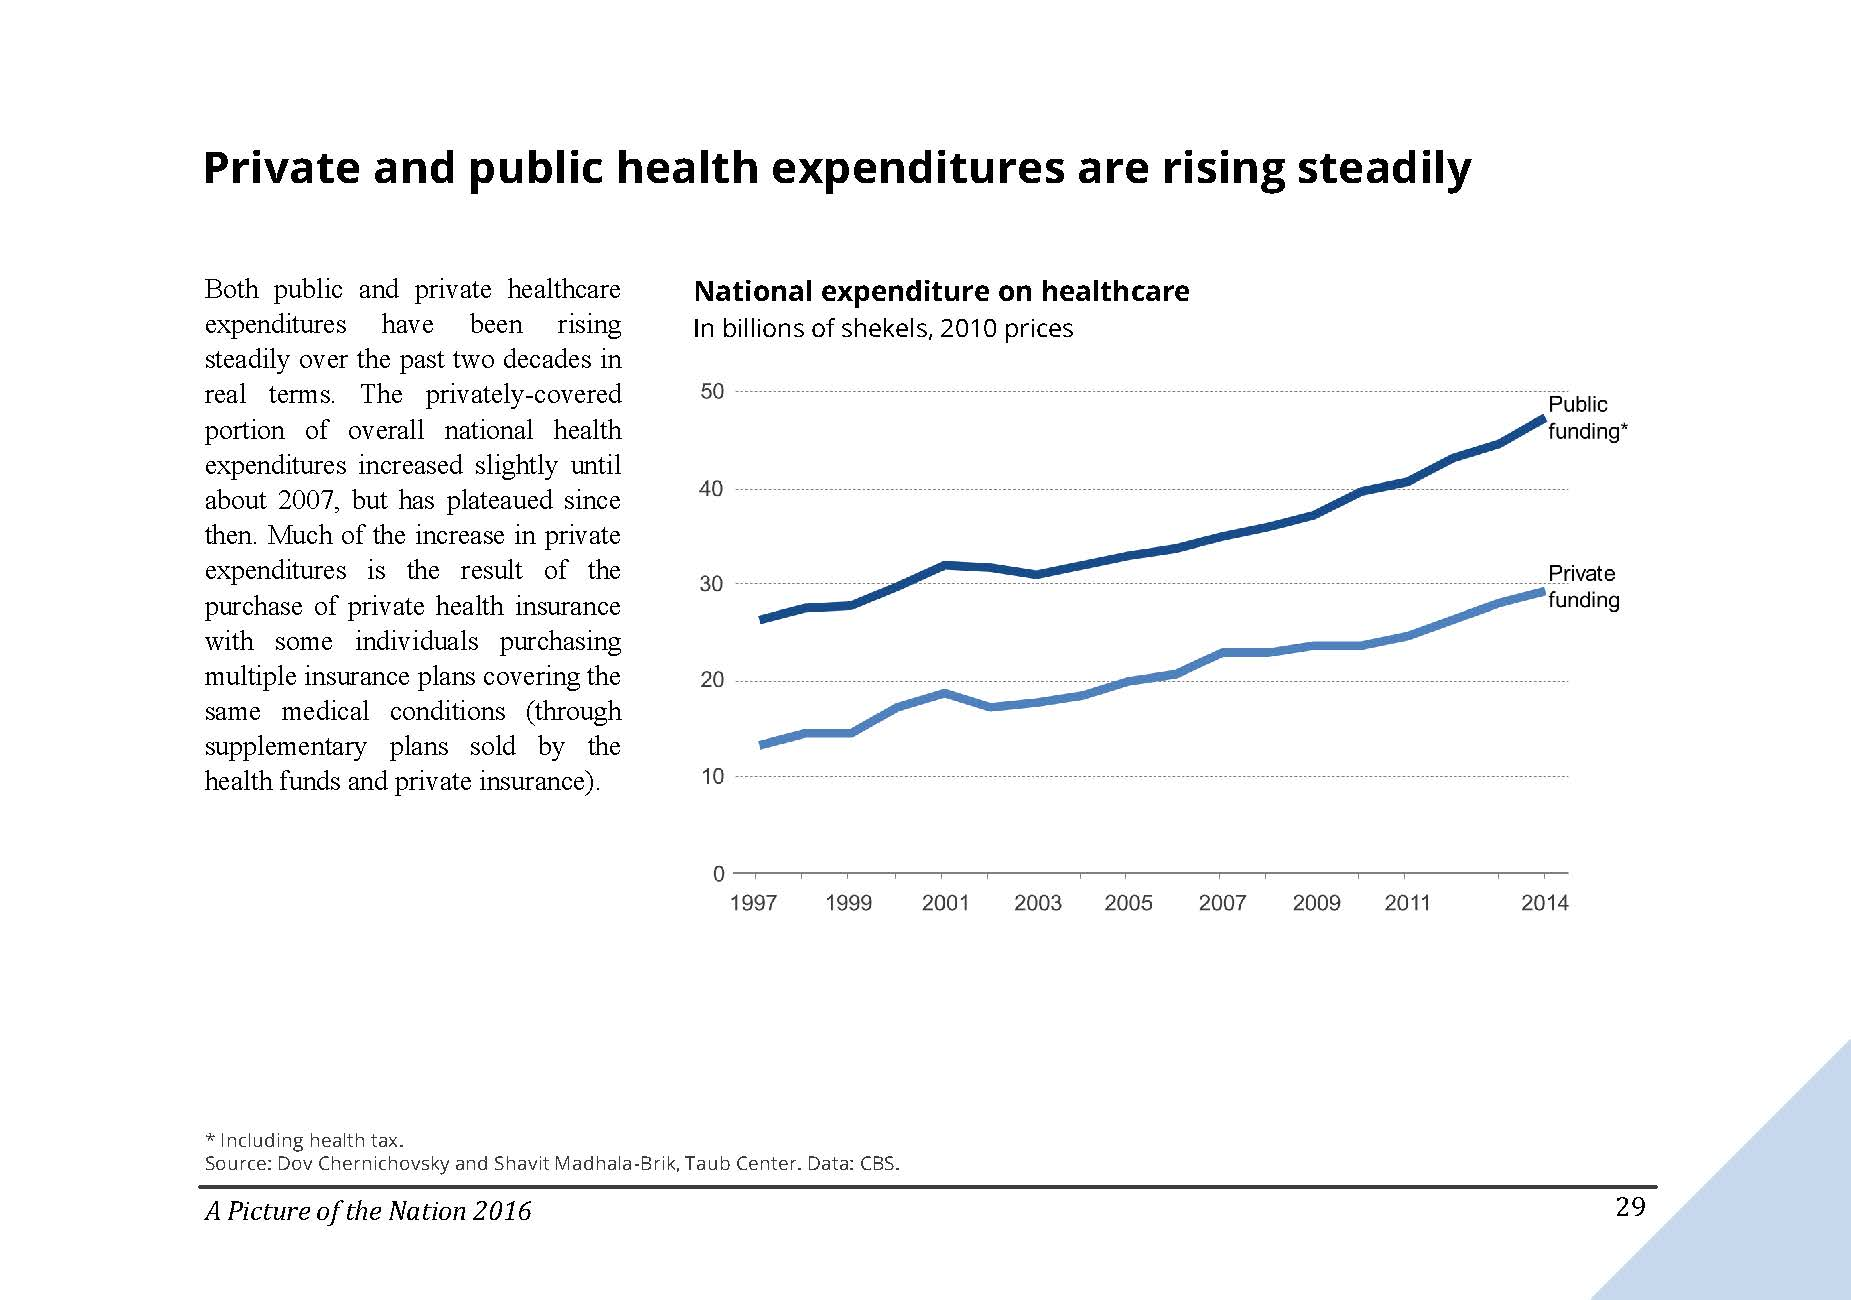 Private and public health expenditures are rising steadily in Israel